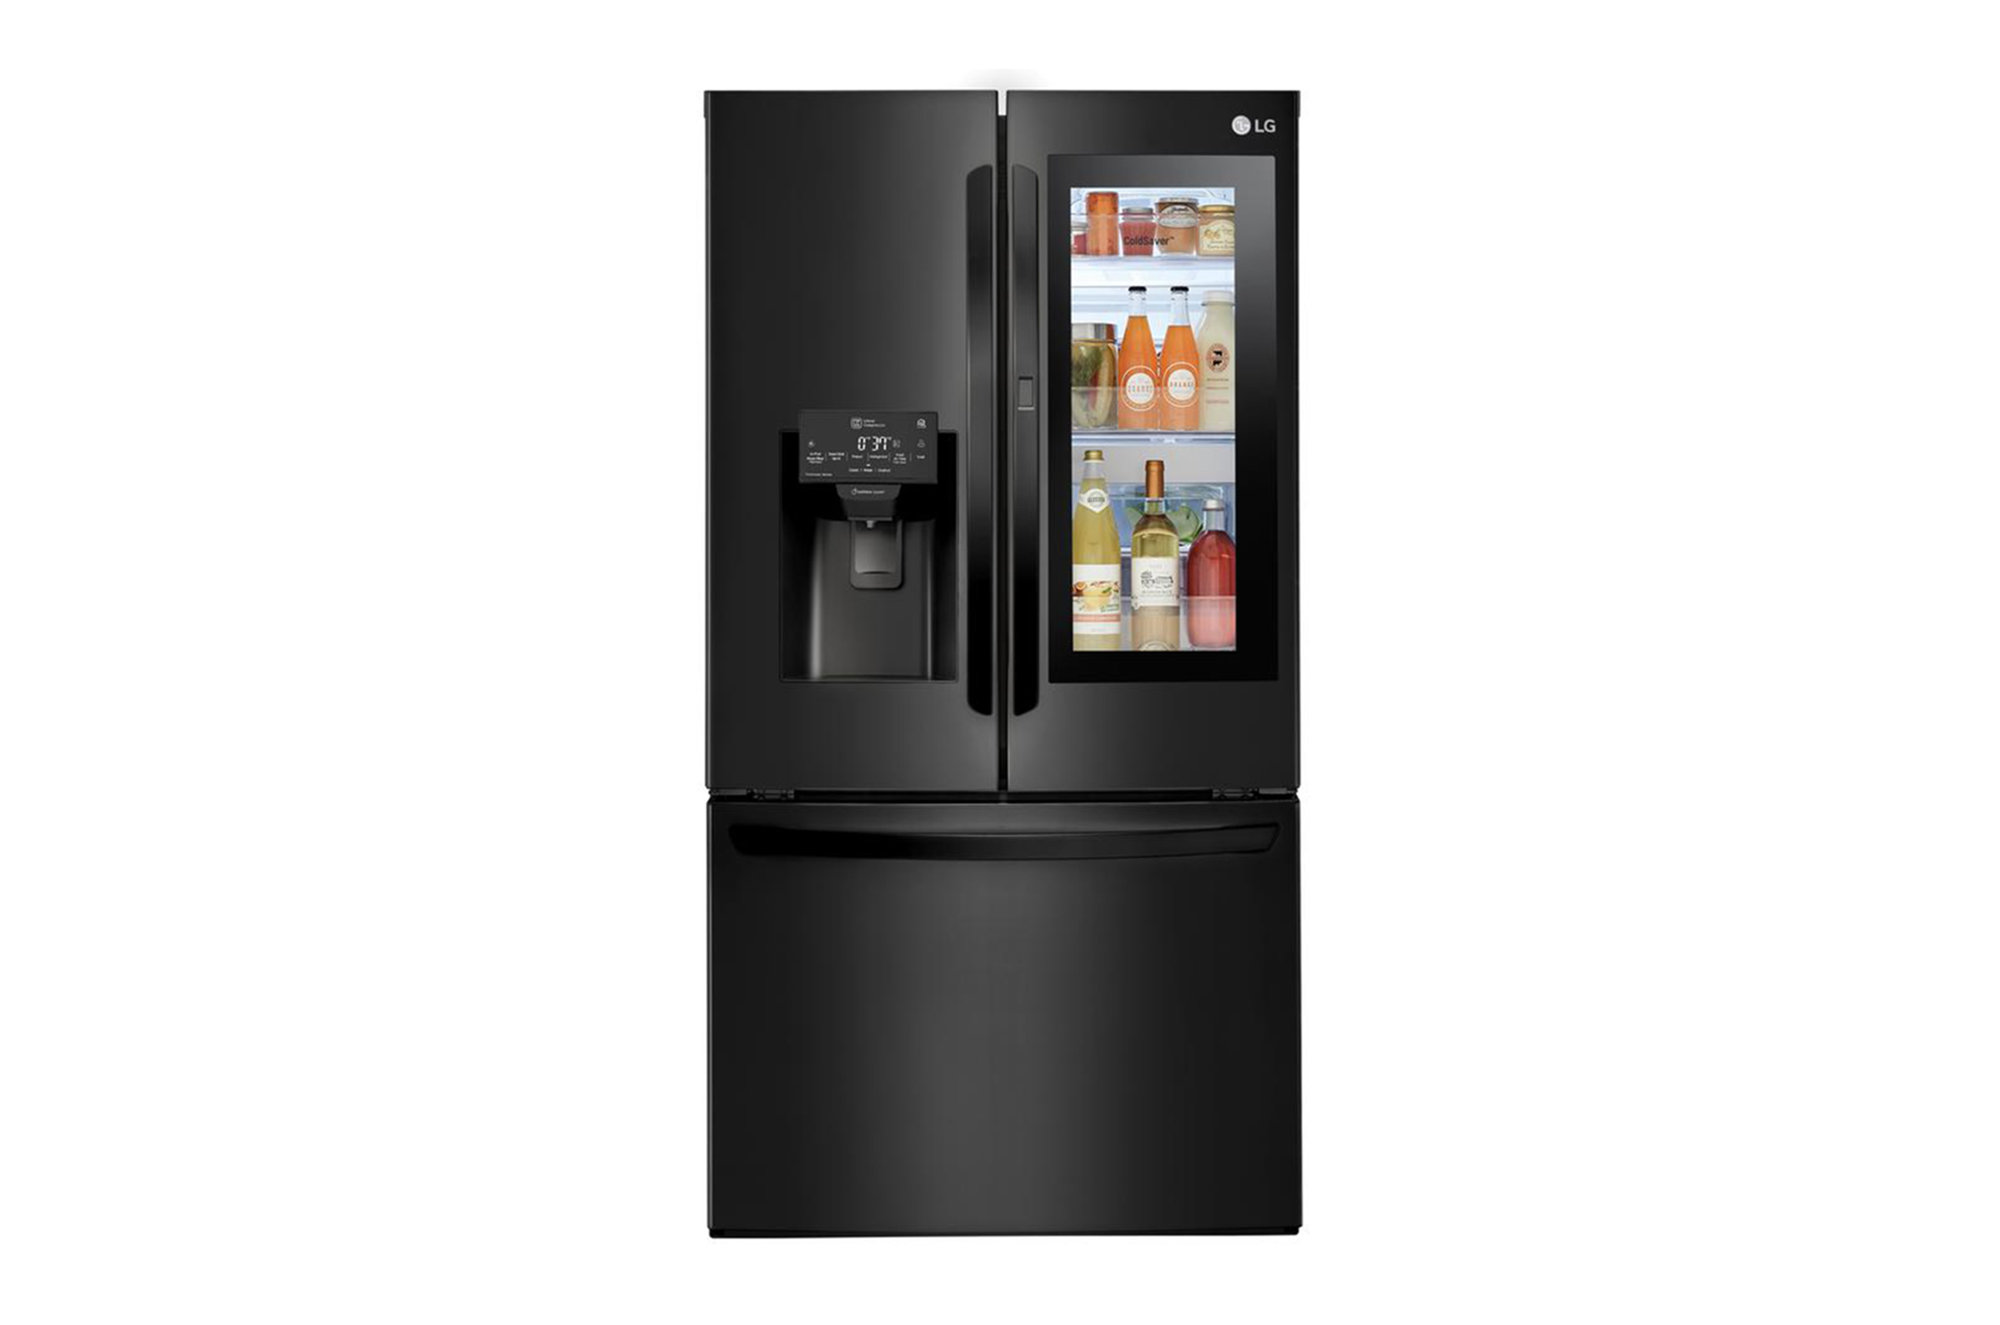 The Insanely Good Household Appliances on Our Black Friday and Cyber Monday Wish List 048296efa05feda4c077874ee2fdbb9f